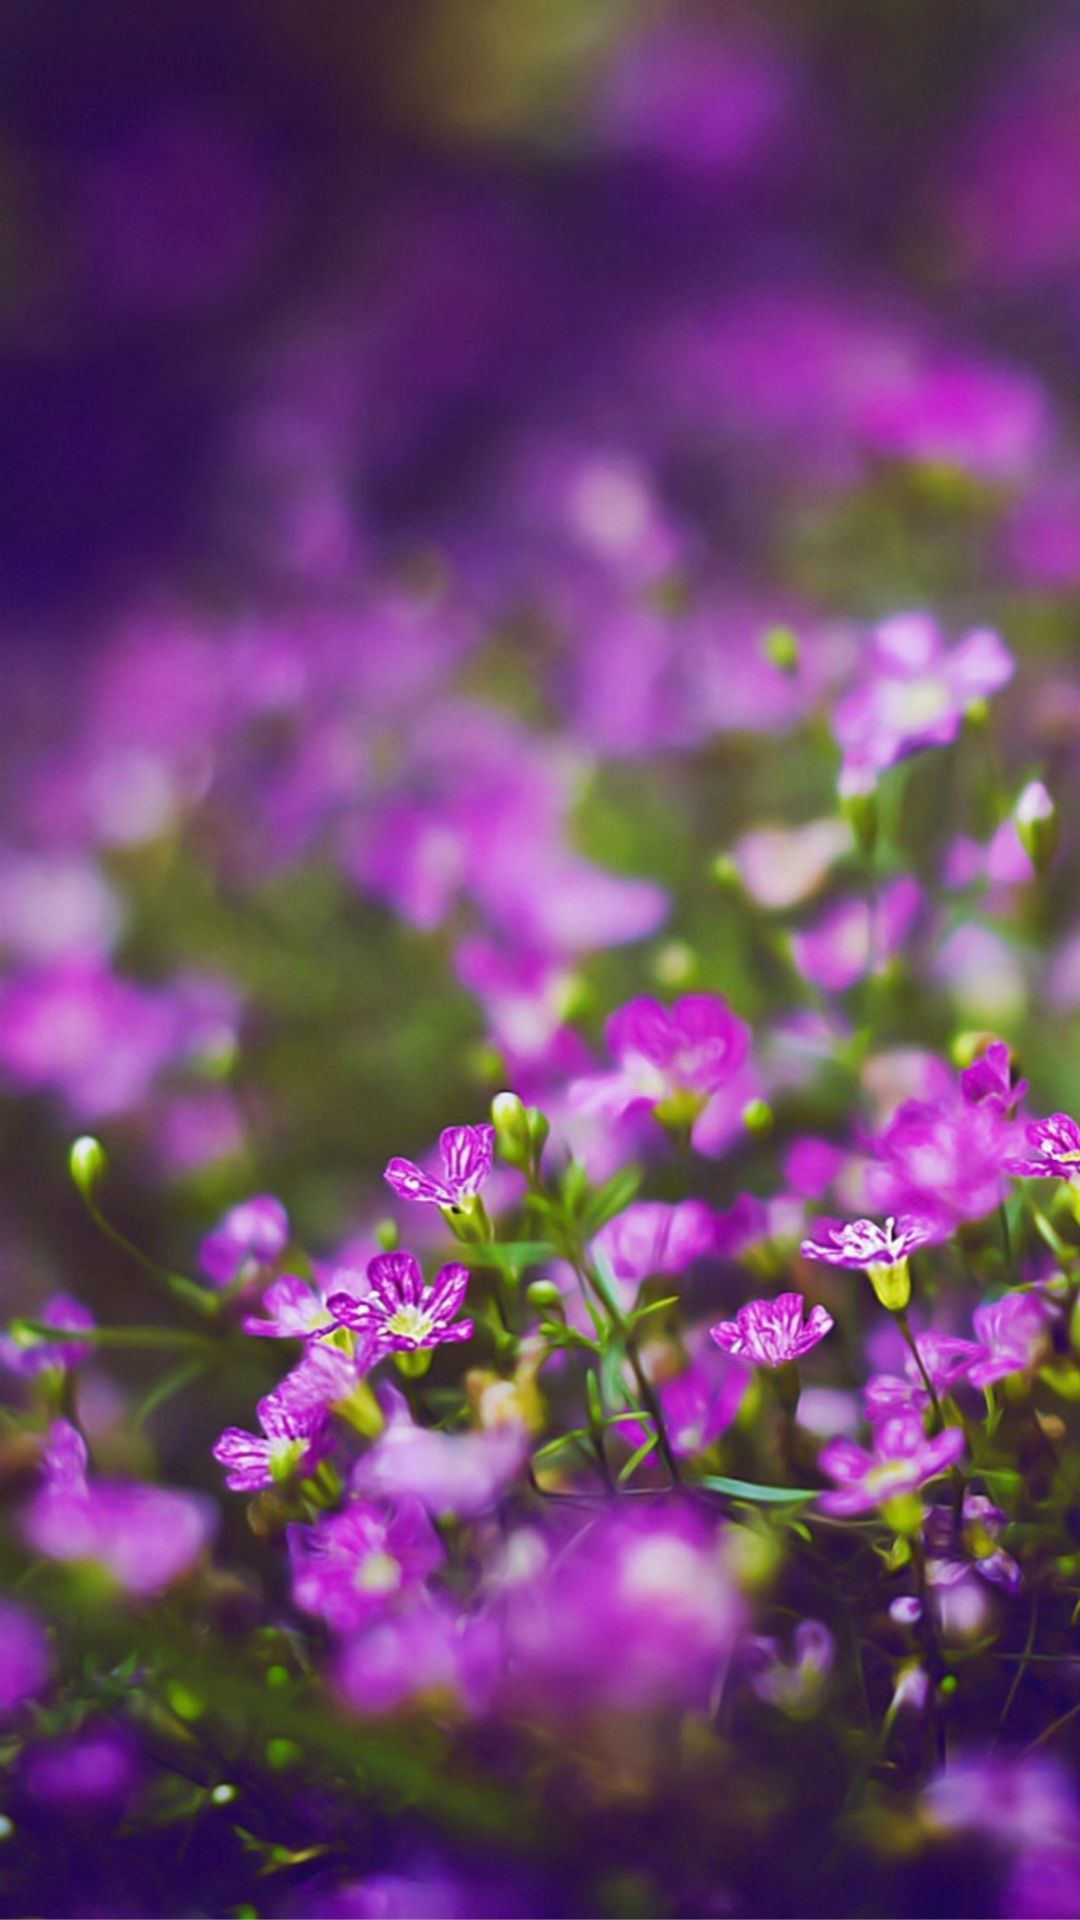 Wallpaper iphone violet - Beautiful Purple Flower Field Blur Bokeh Iphone 6 Wallpaper